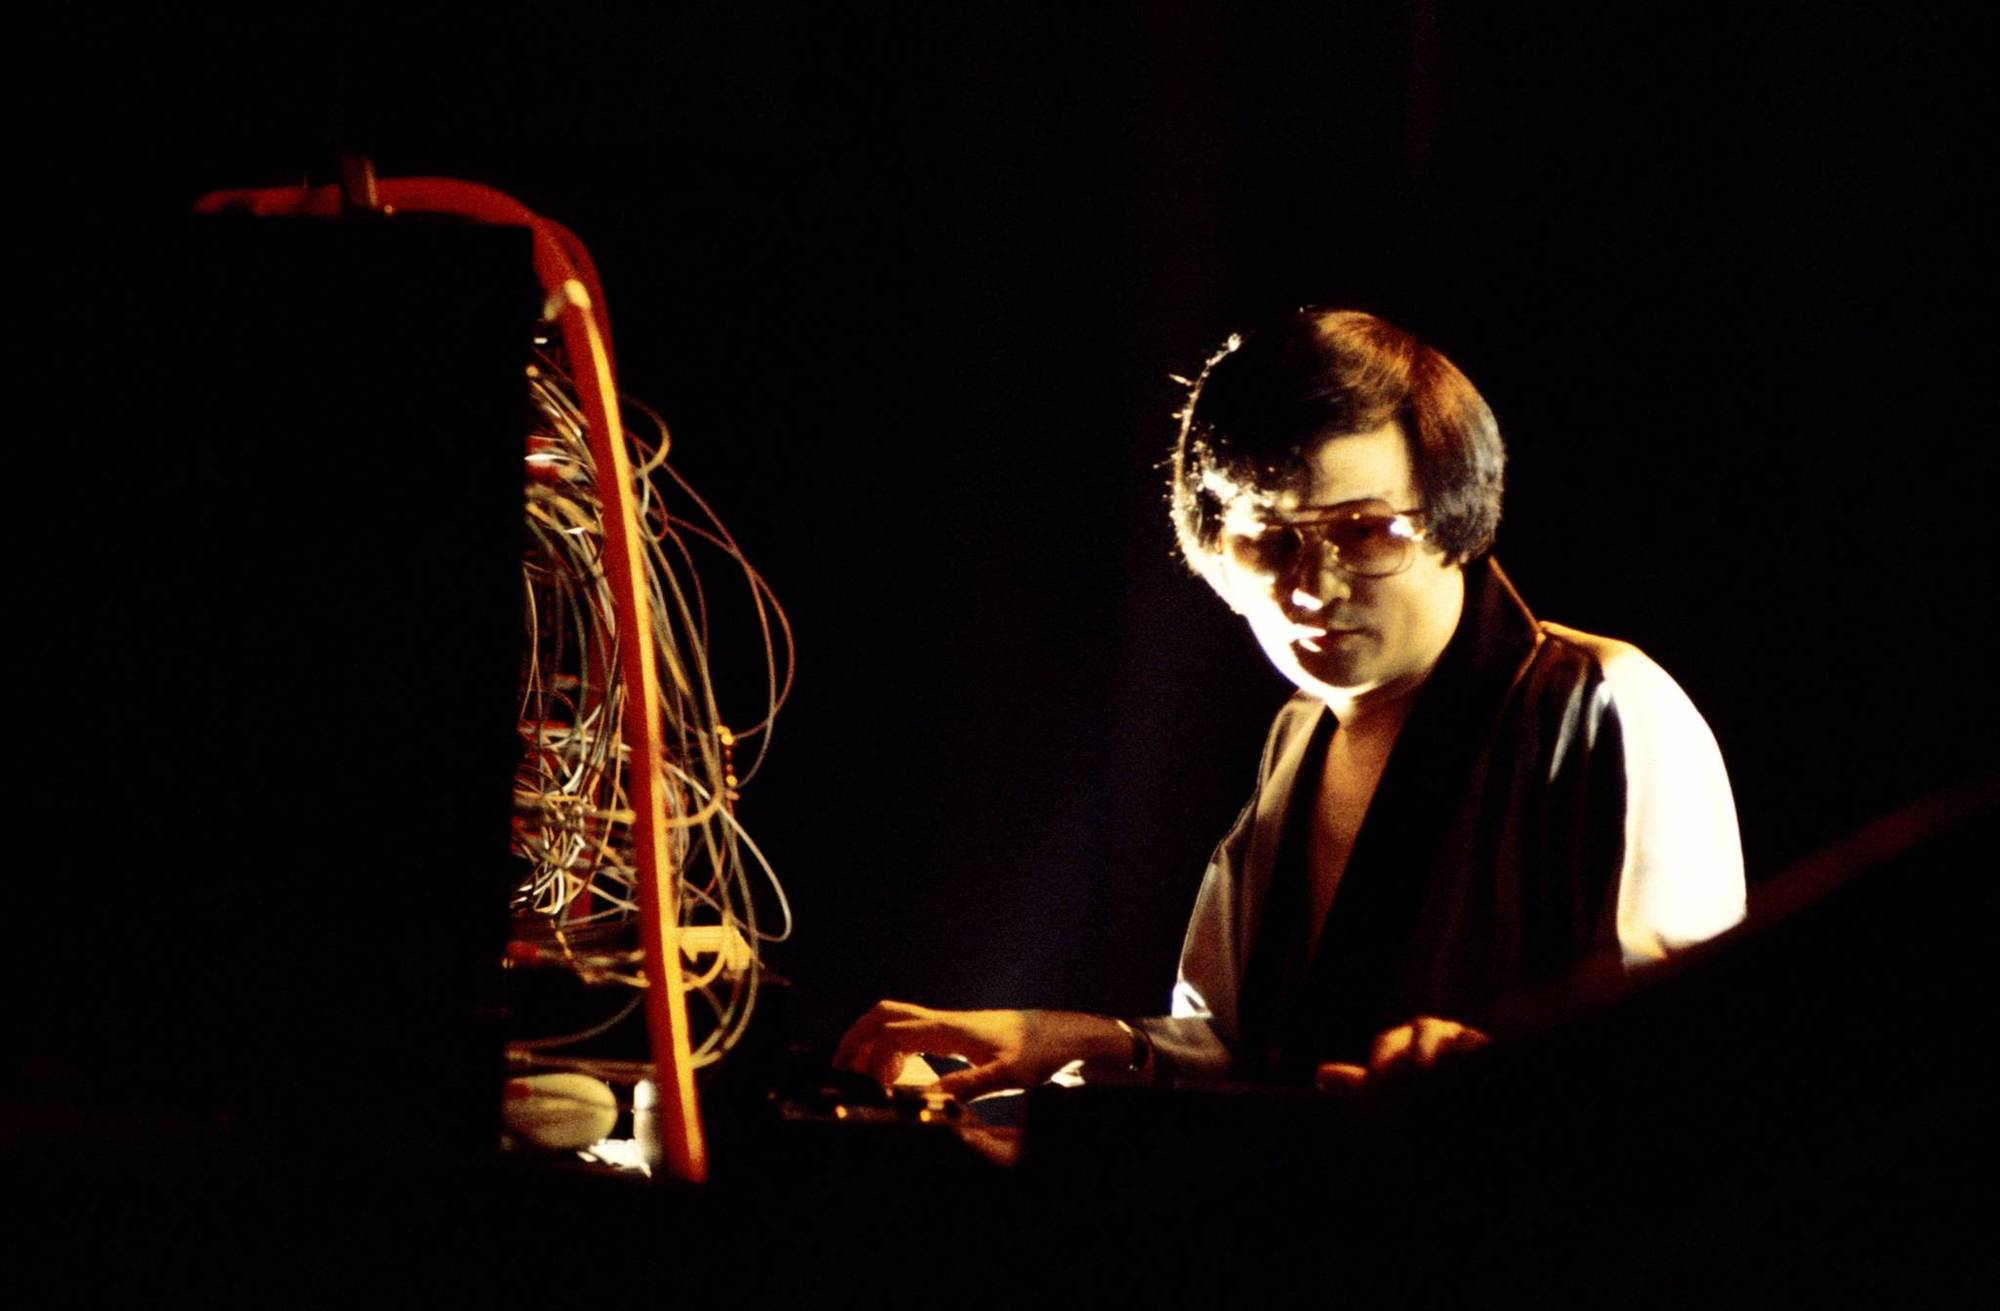 Isao Tomita performing on a synthesizer, as patch cords dangle above the keyboard.